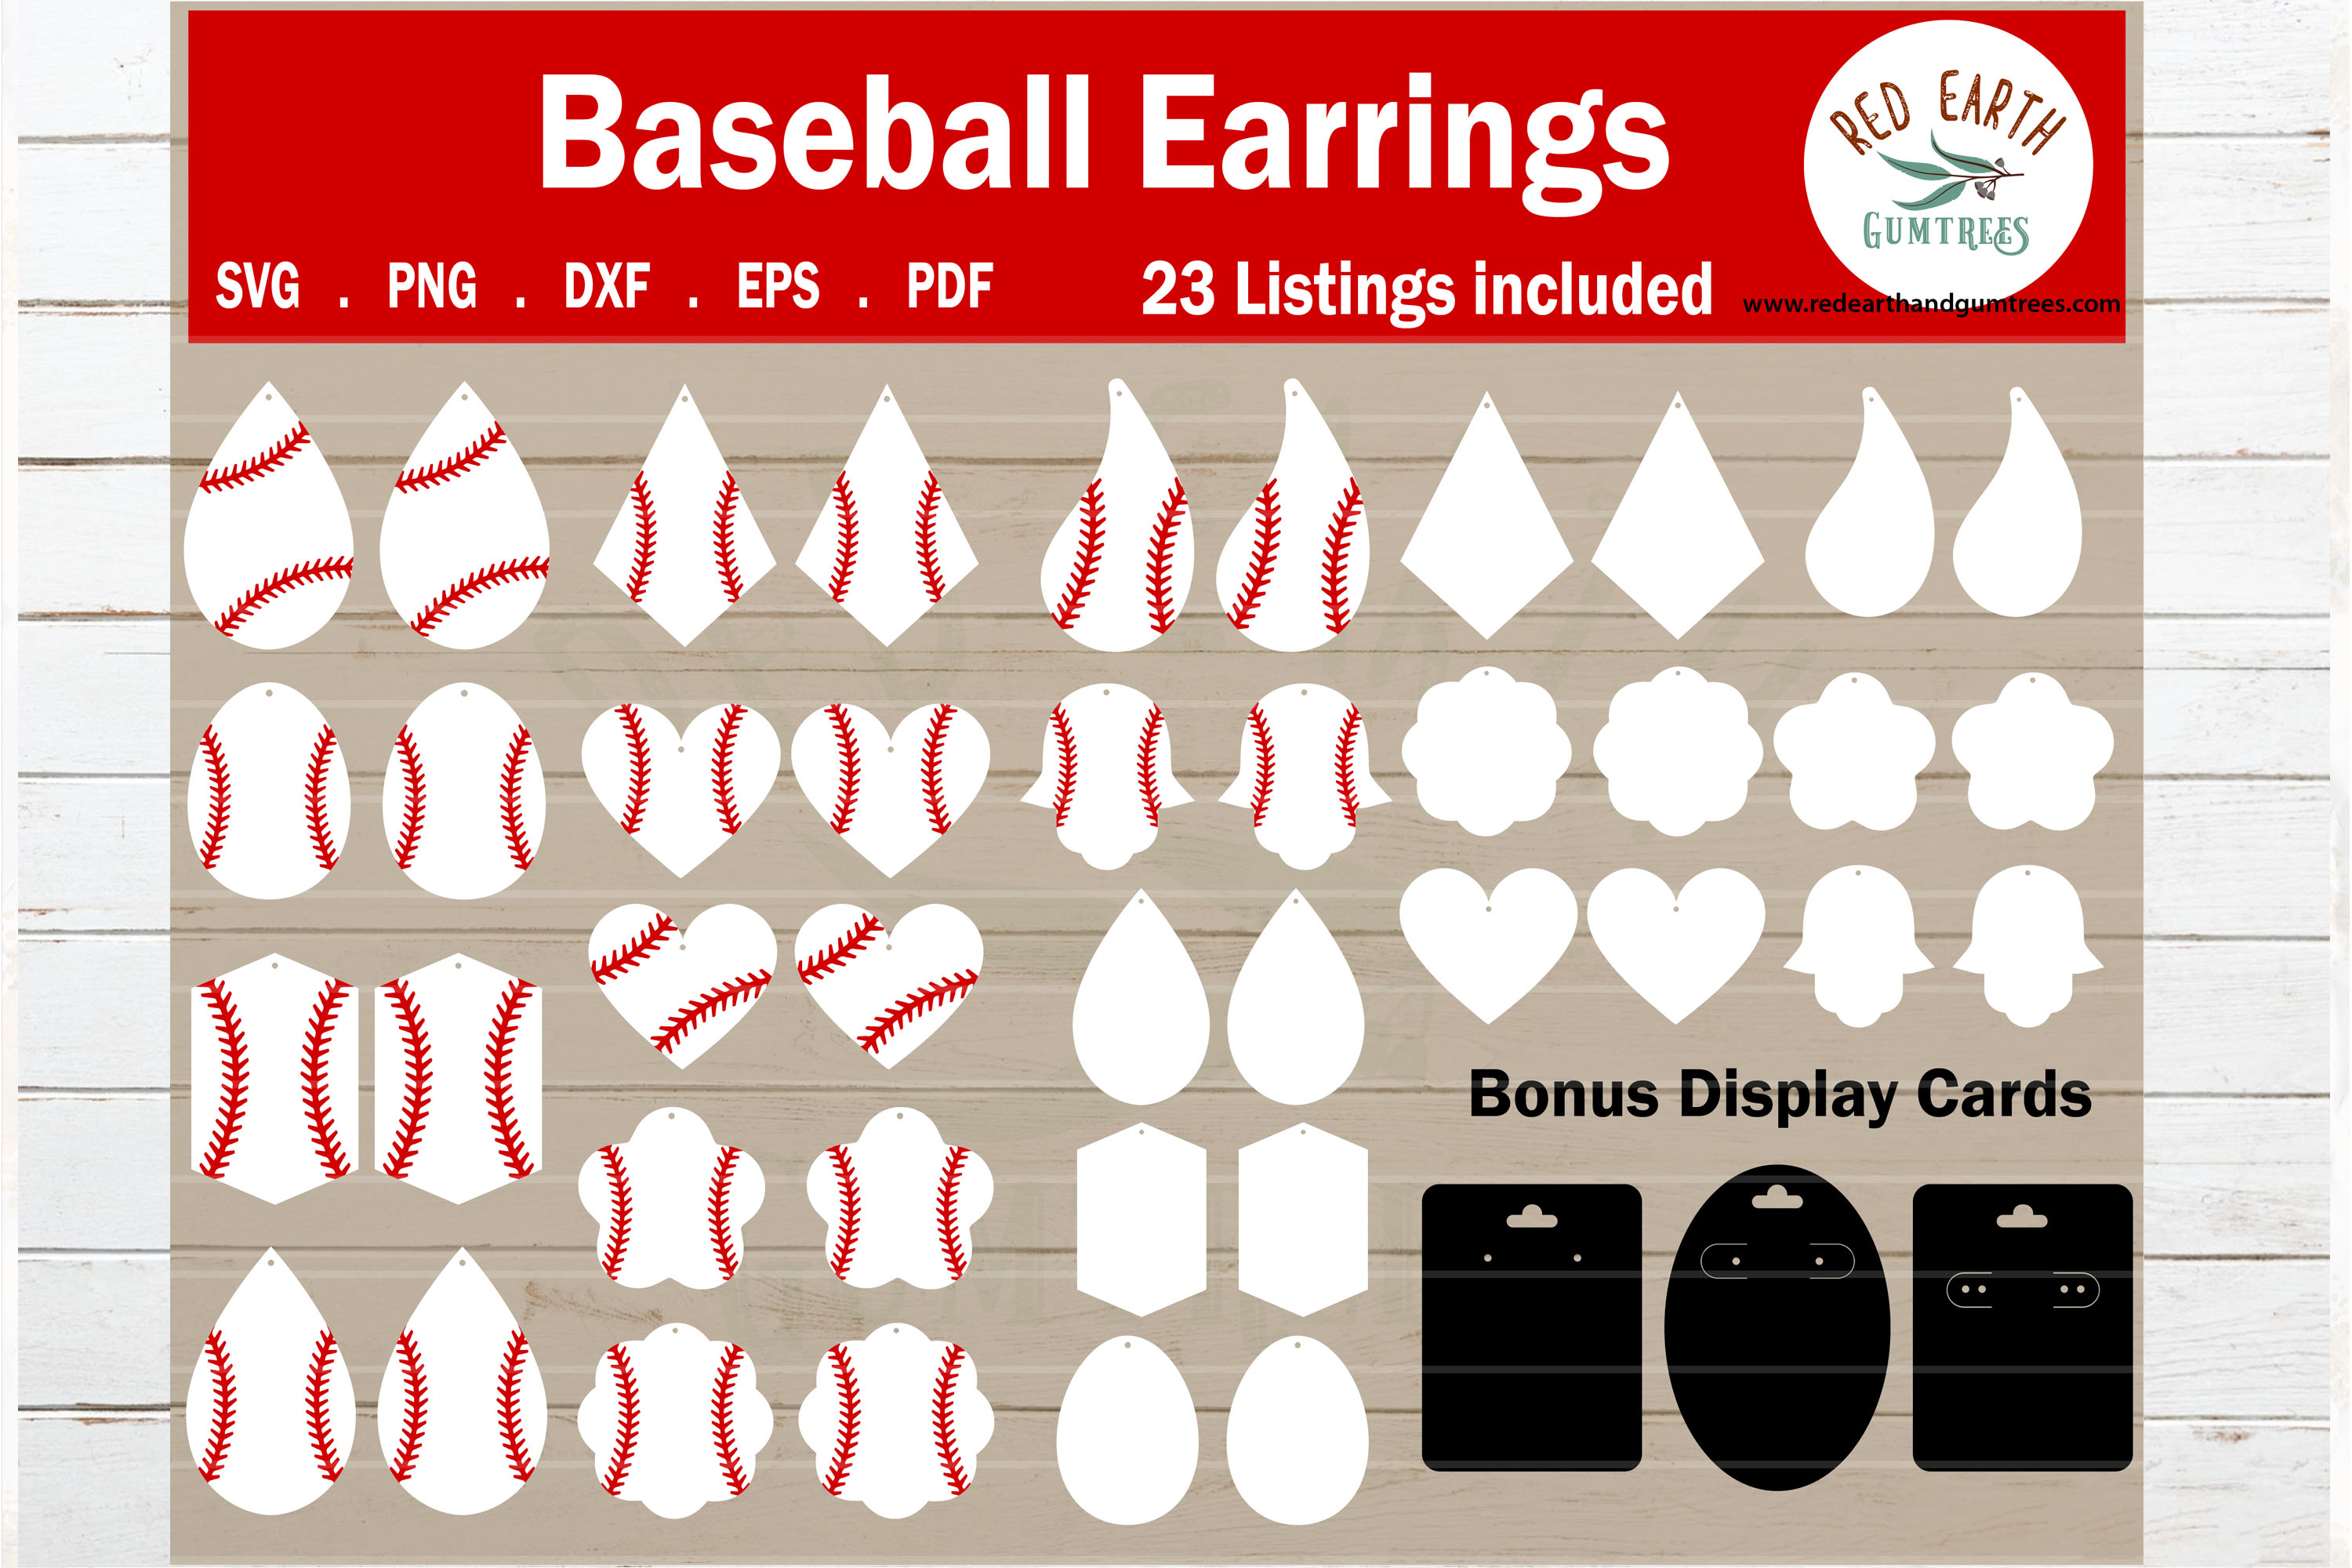 Download Free Baseball Faux Earrings Template Graphic By Redearth And Gumtrees for Cricut Explore, Silhouette and other cutting machines.